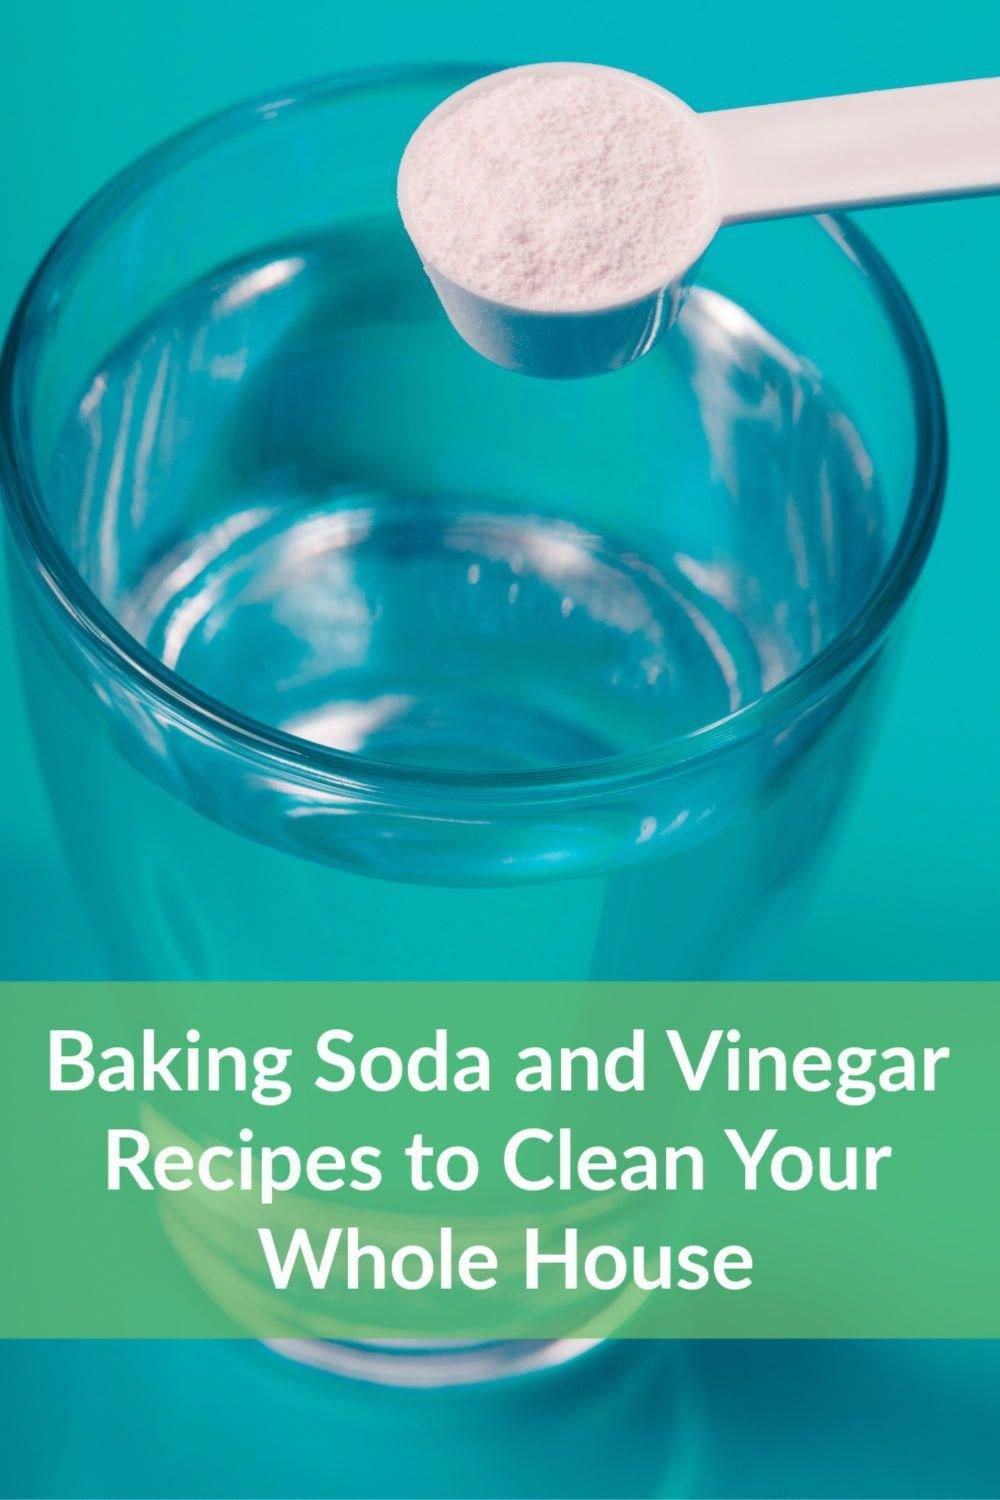 Baking Soda and Vinegar Recipes to Clean Your Whole House